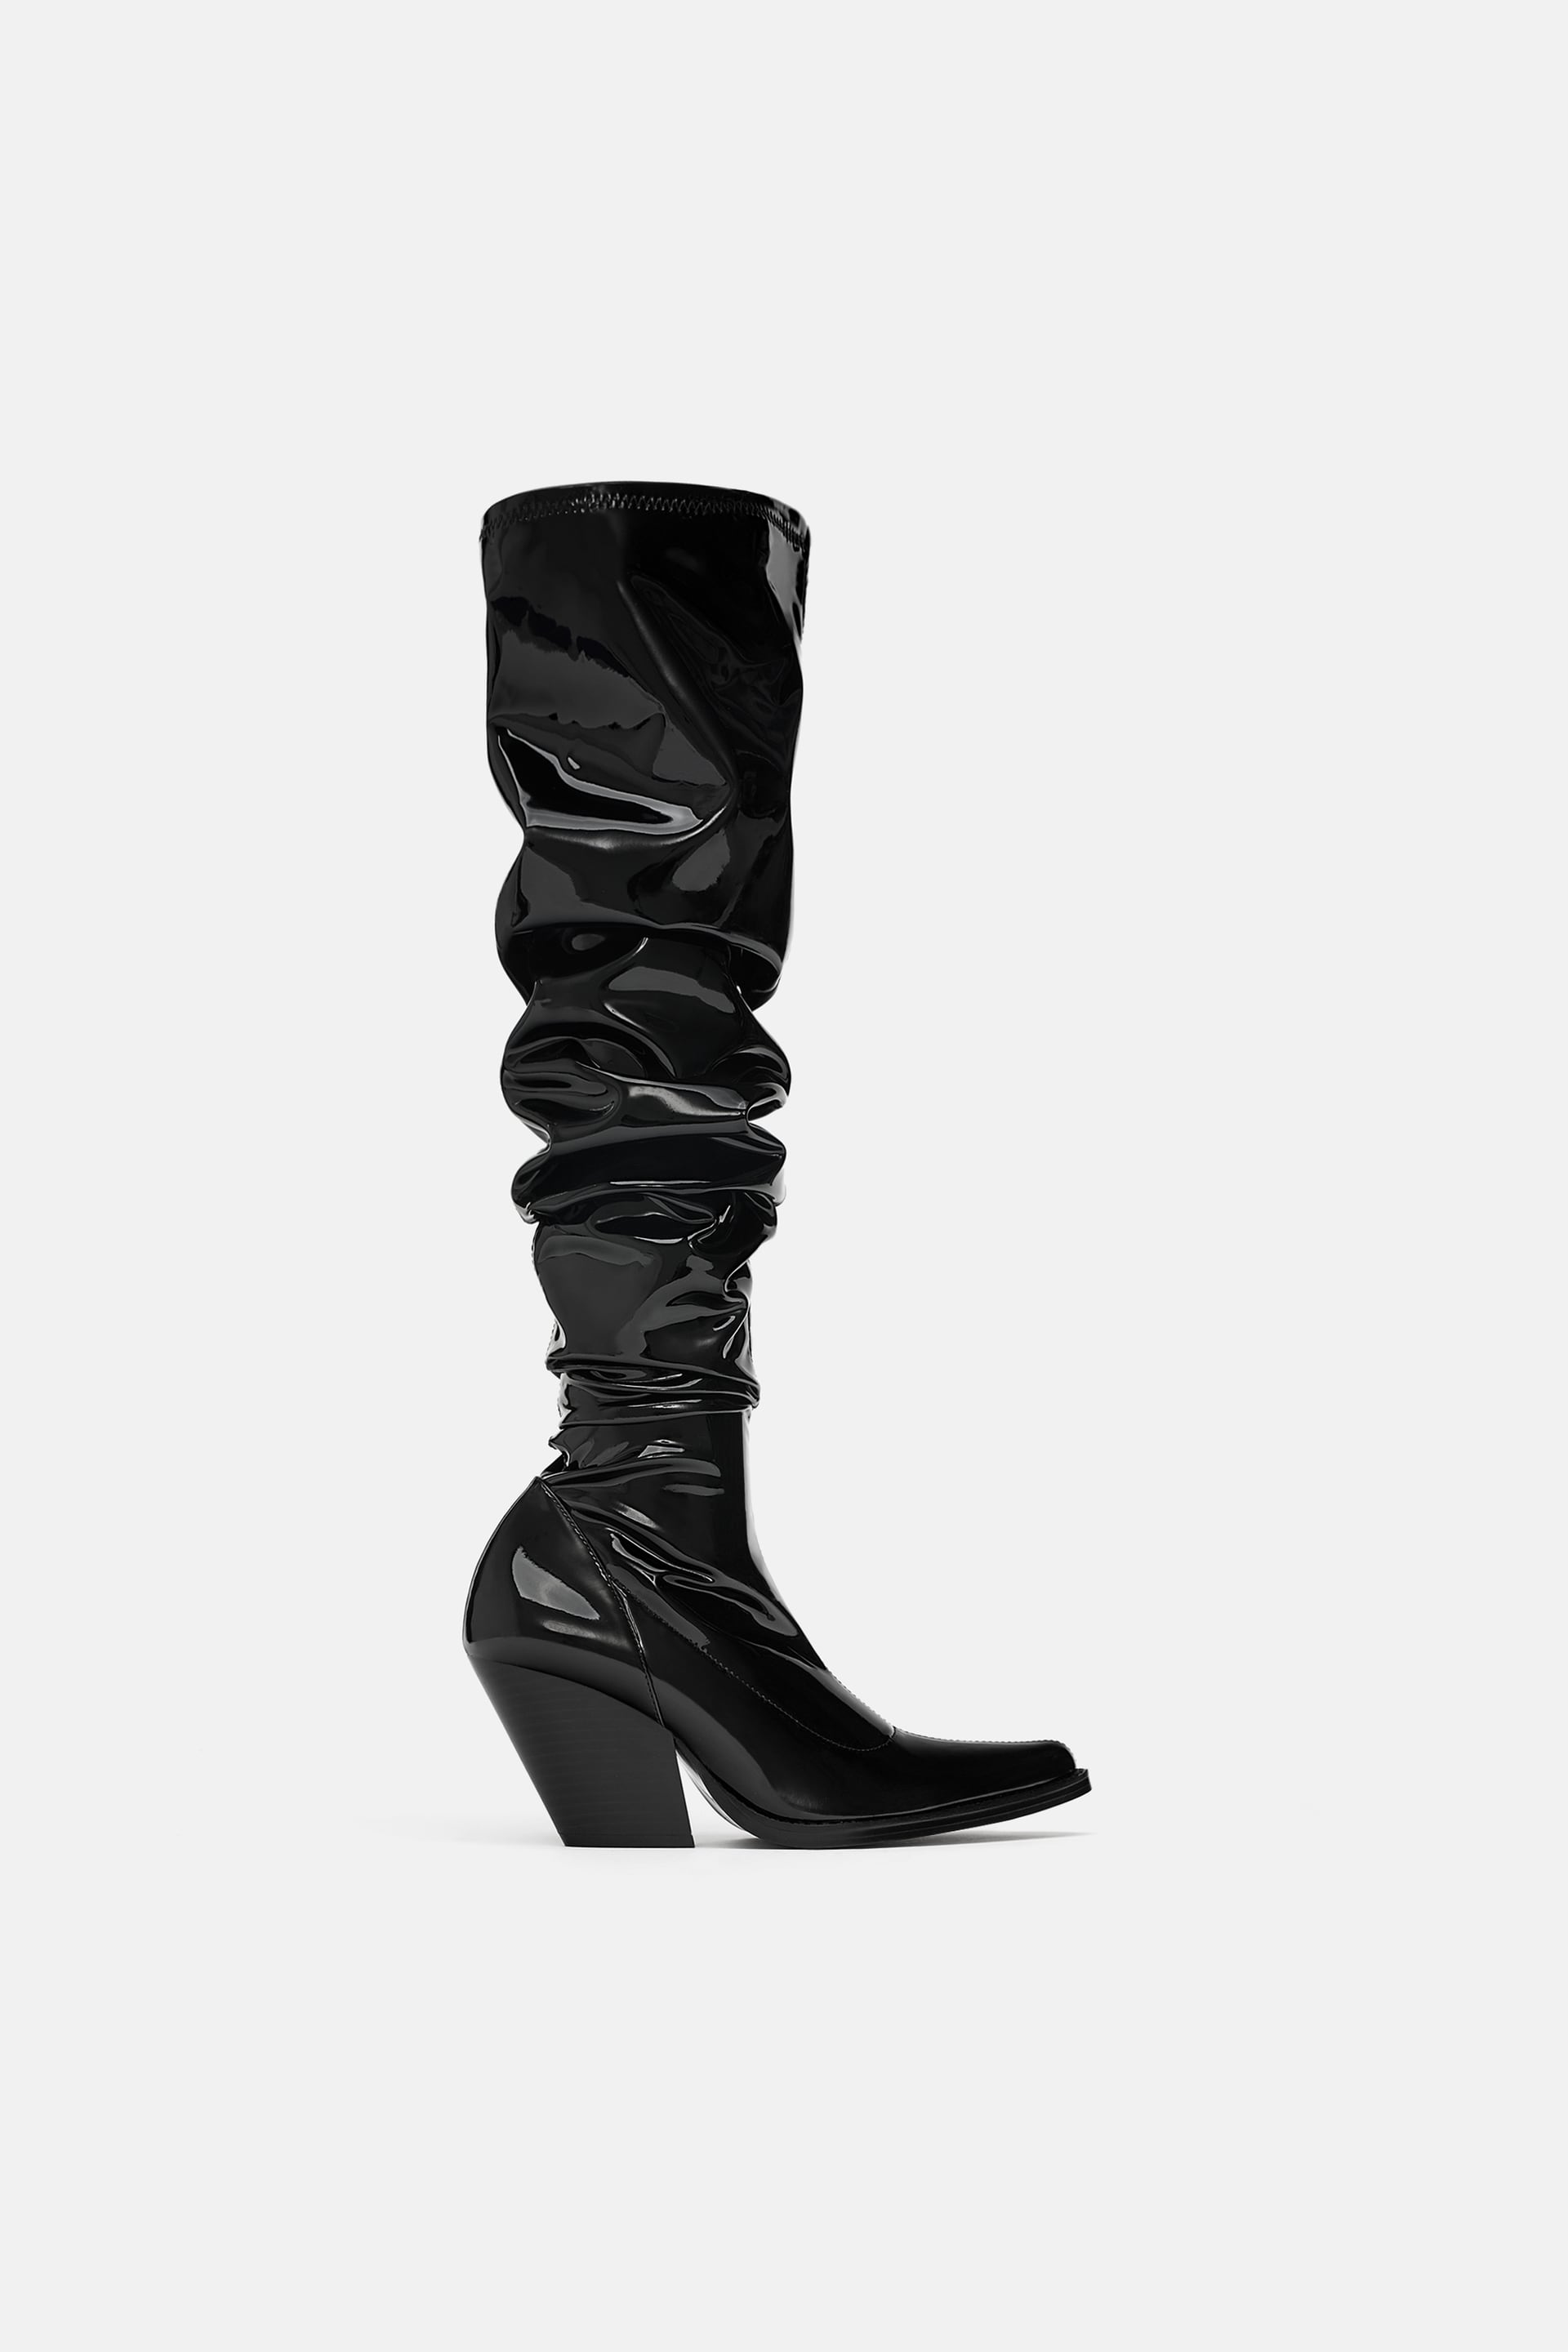 The Surprising Boot Trend Youre About to See Everywhere